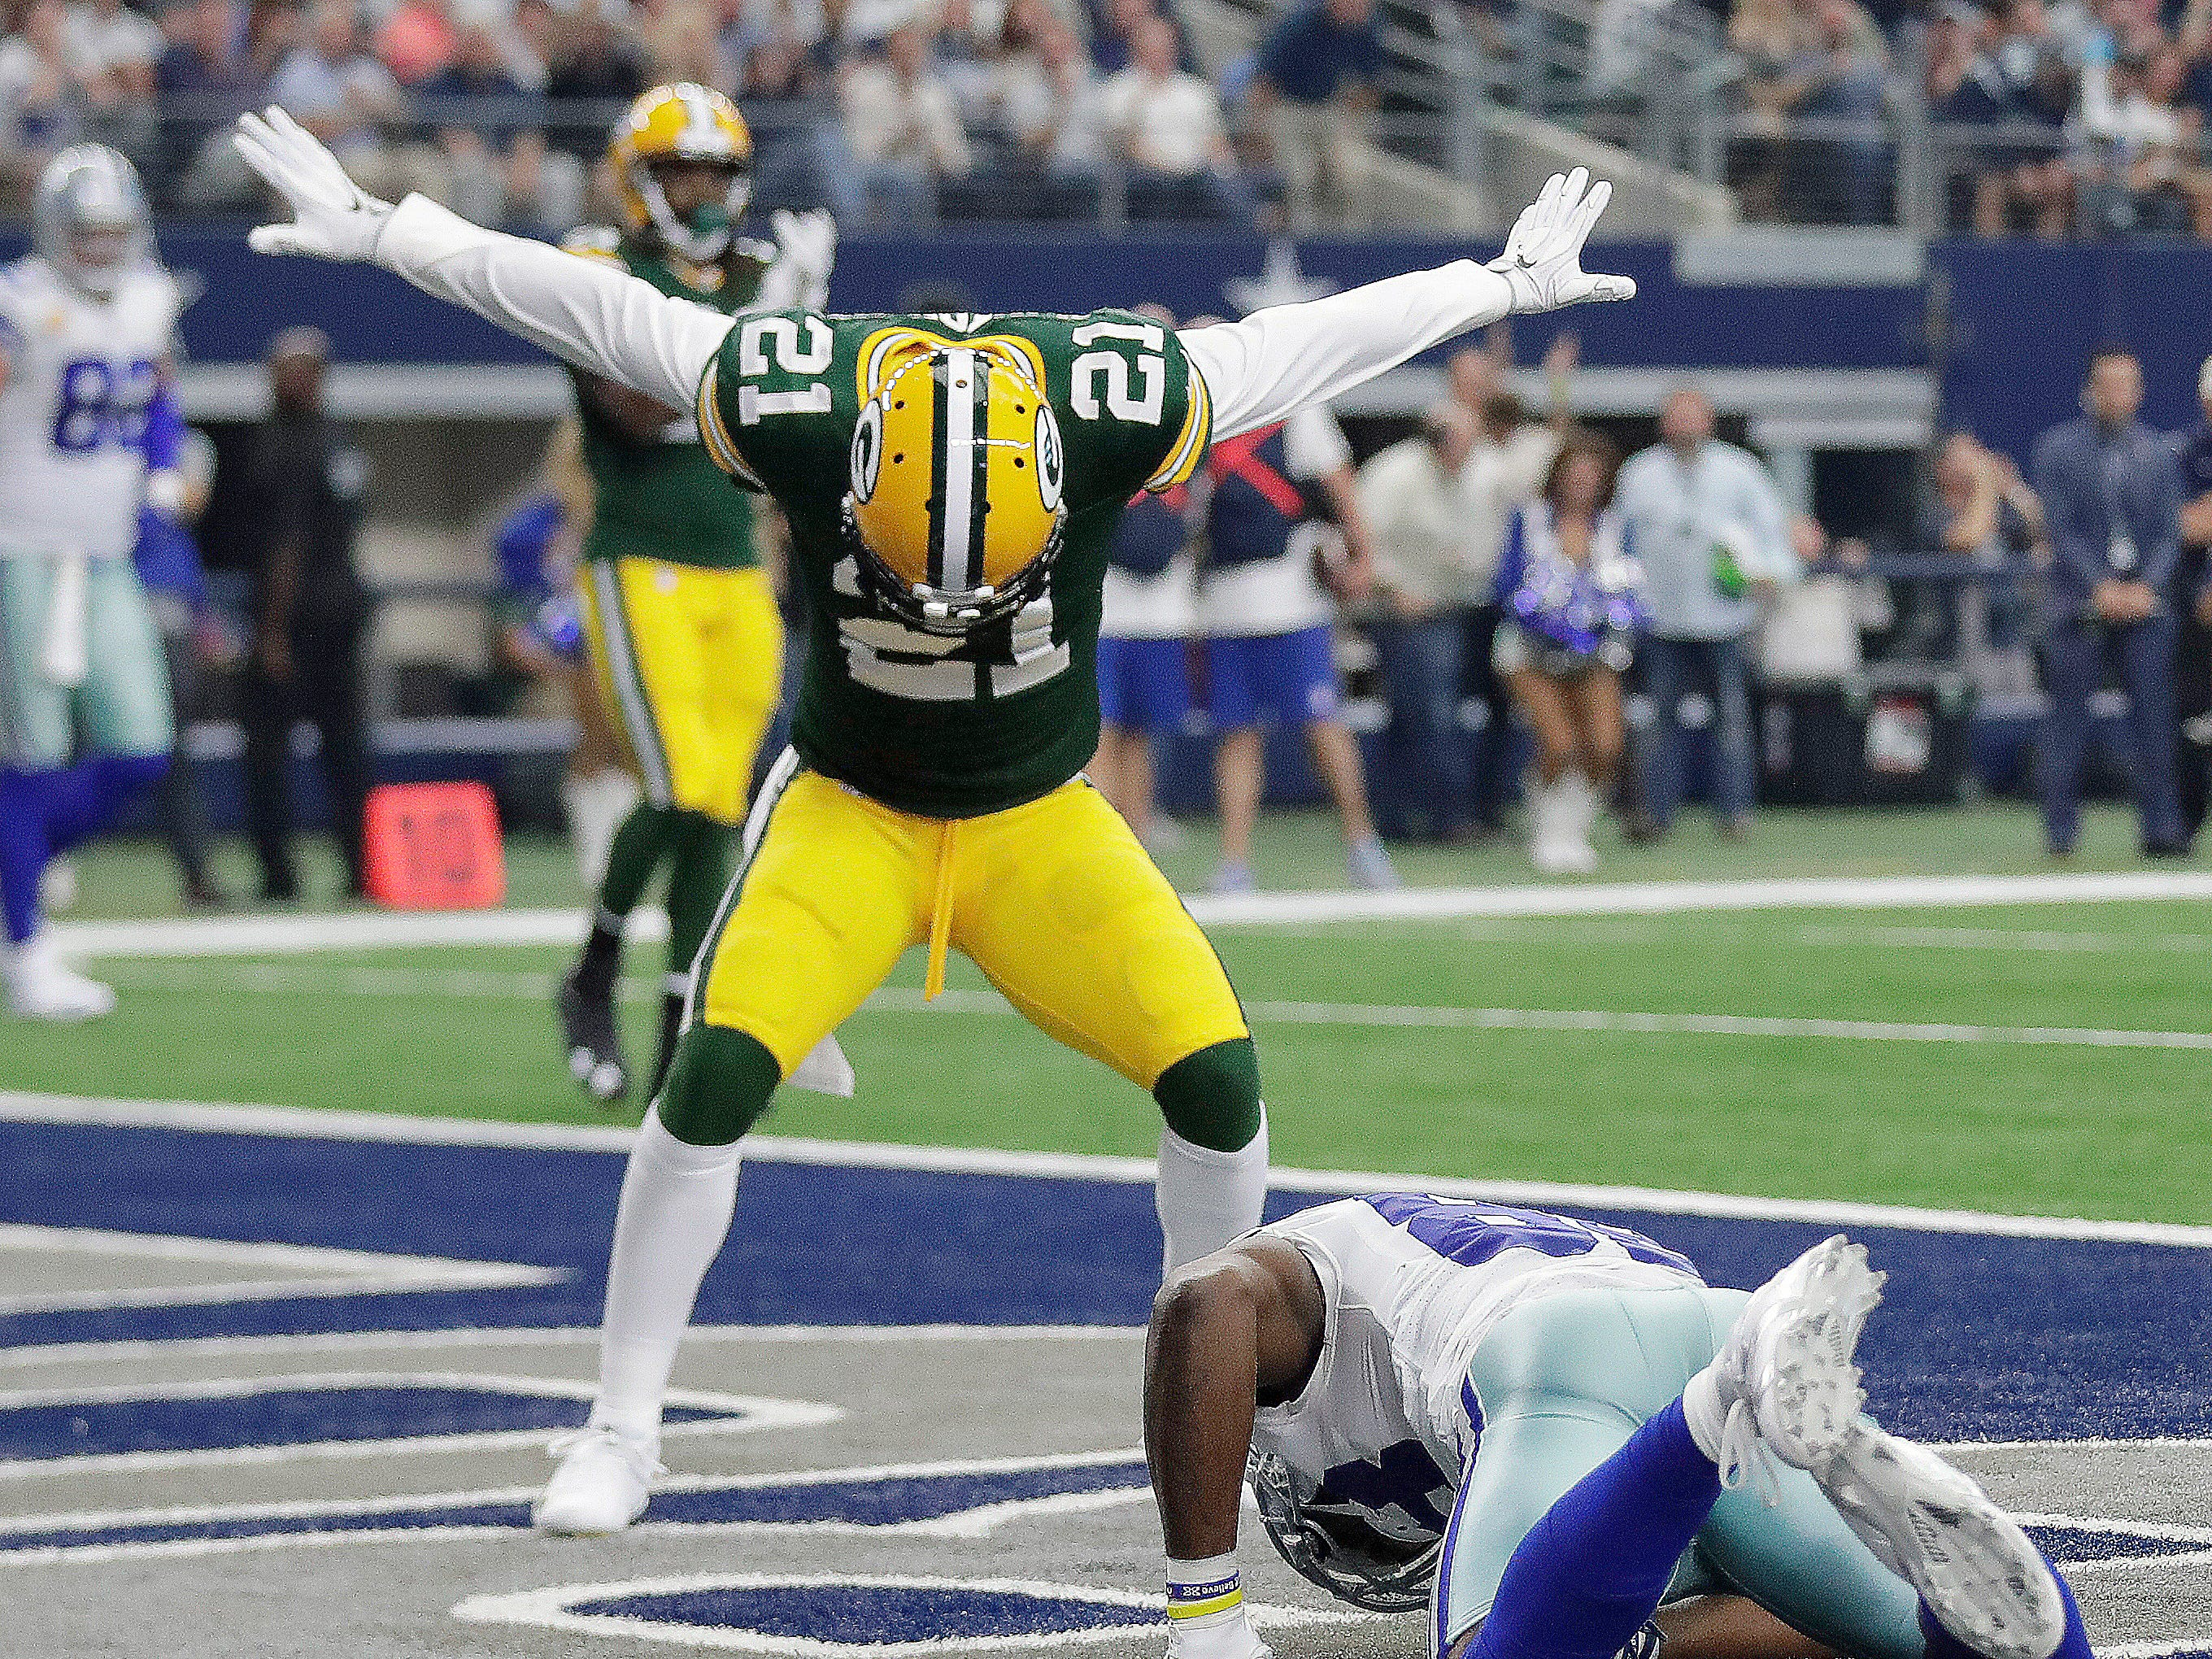 Green Bay Packers free safety Ha Ha Clinton-Dix (21) signals incomplete but was penalized on the play against the Dallas Cowboys Sunday, October 8, 2017 at AT&T Stadium in Arlington, Tx.